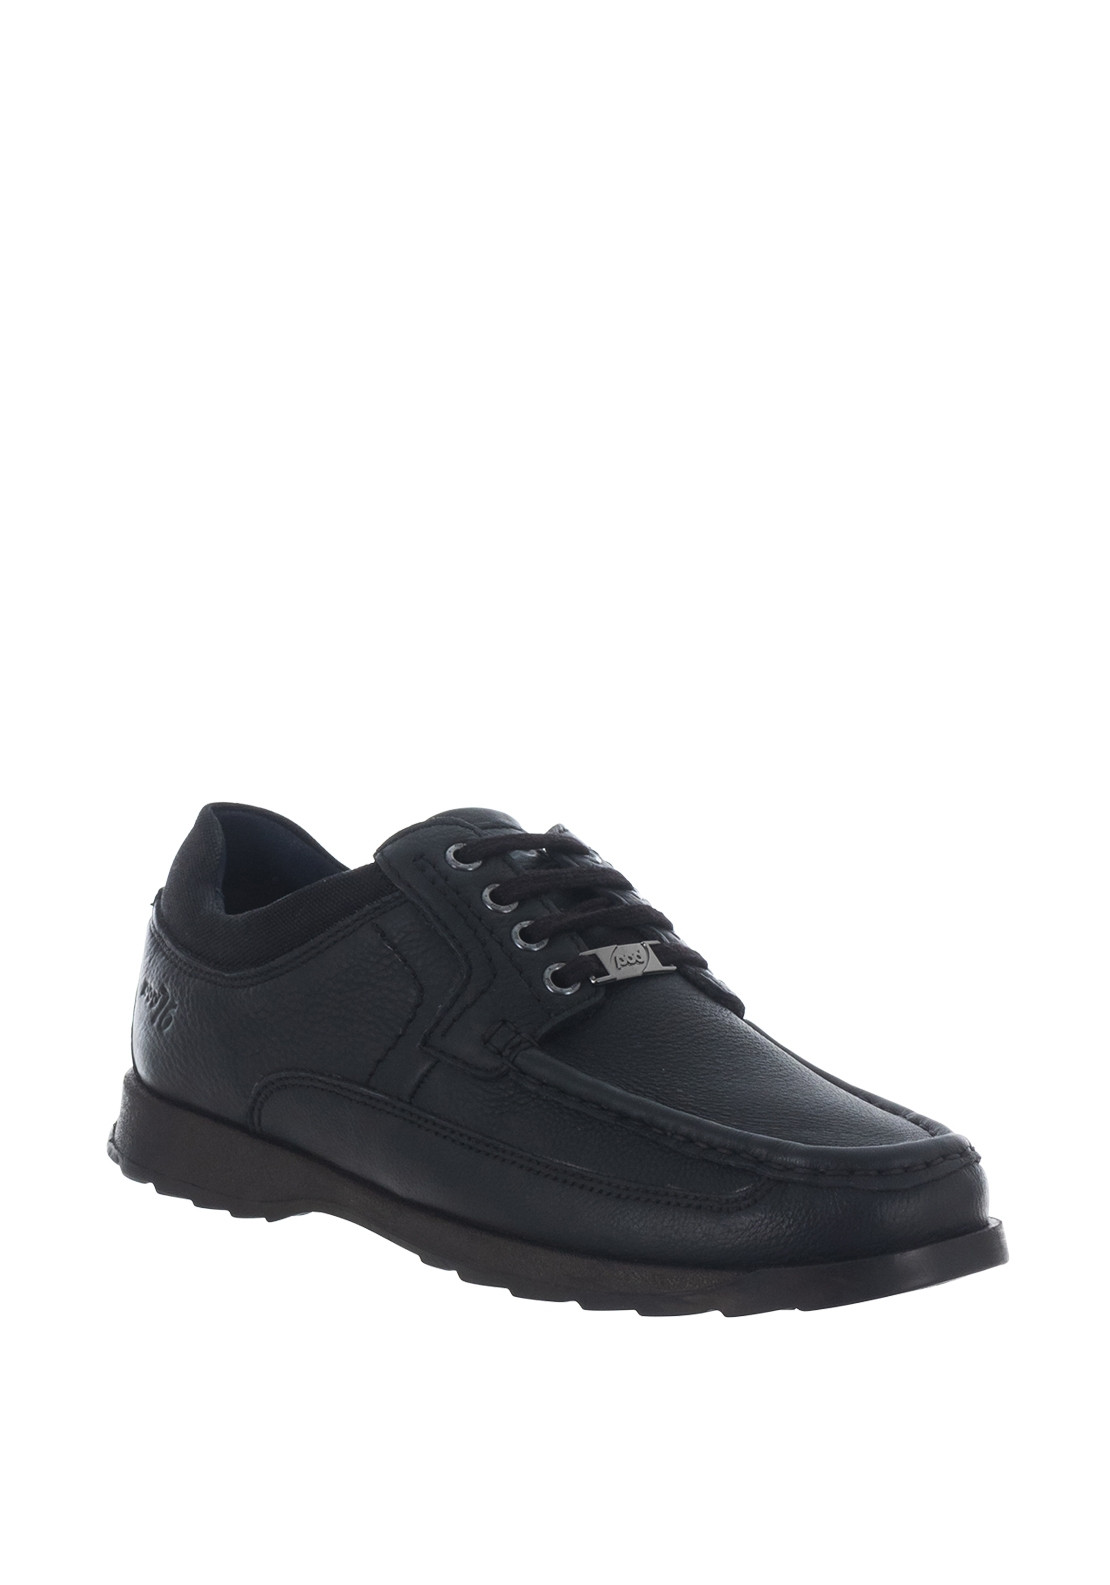 Paul O'Donnell by Pod Rally Lace Up Leather Shoe, Black